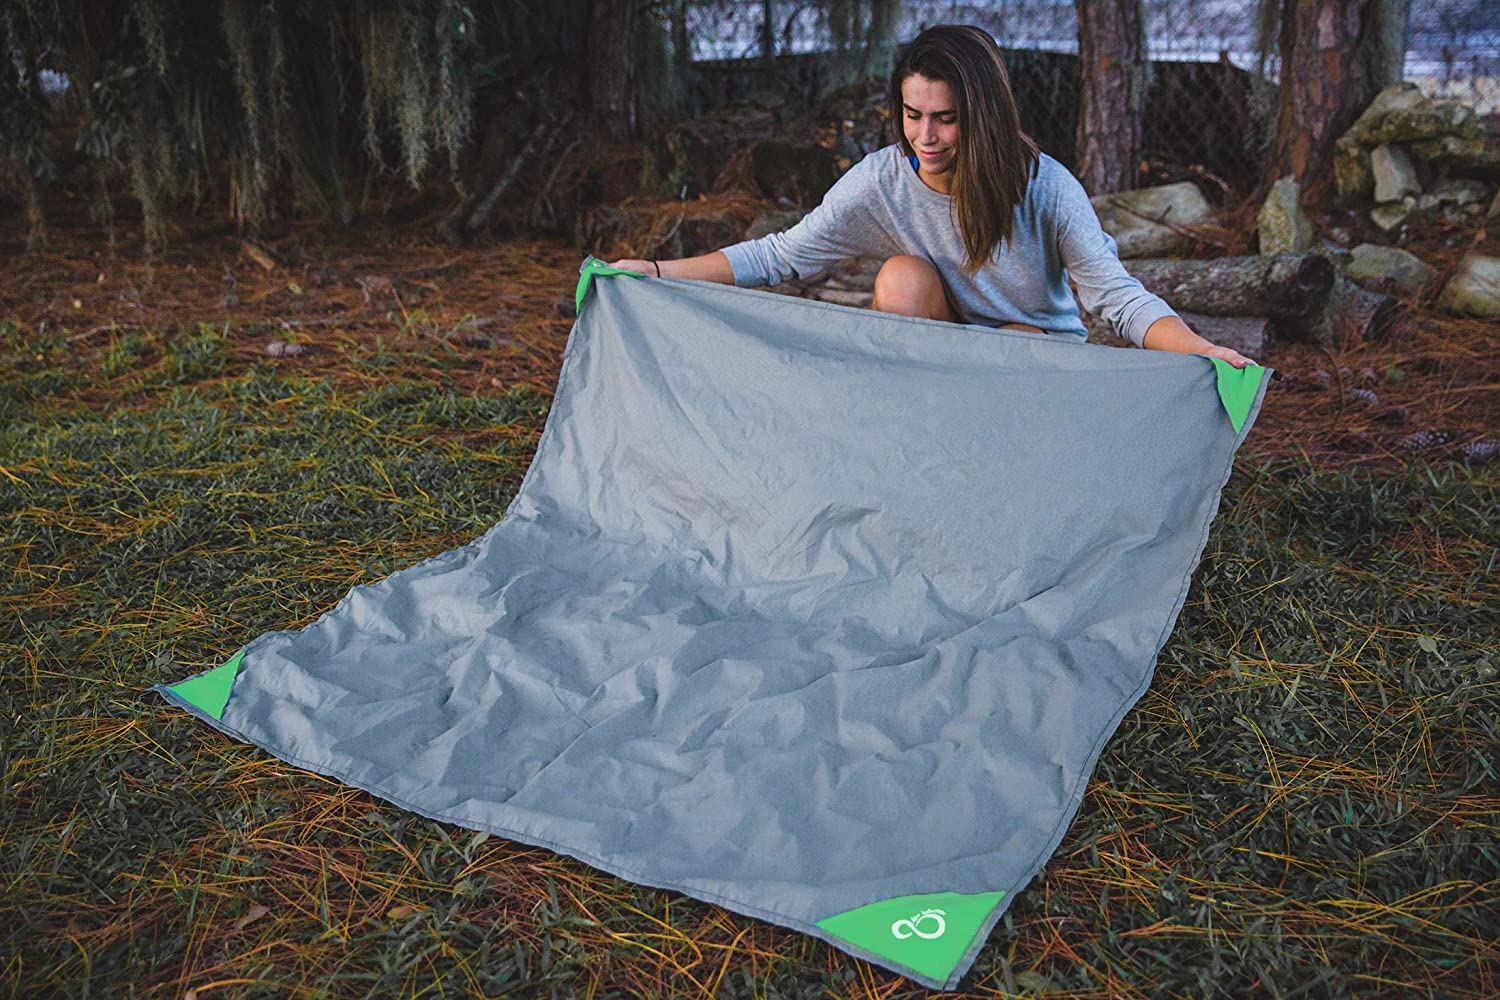 """Ground Stakes /& Carabiner Included 4 Corner Pockets Compact Outdoor Sand Proof Beach Blanket- 55/"""" x 60/"""" Pocket Sized Mat Waterproof Ground Protection /& Picnic Accessory- Quick Drying Nylon"""